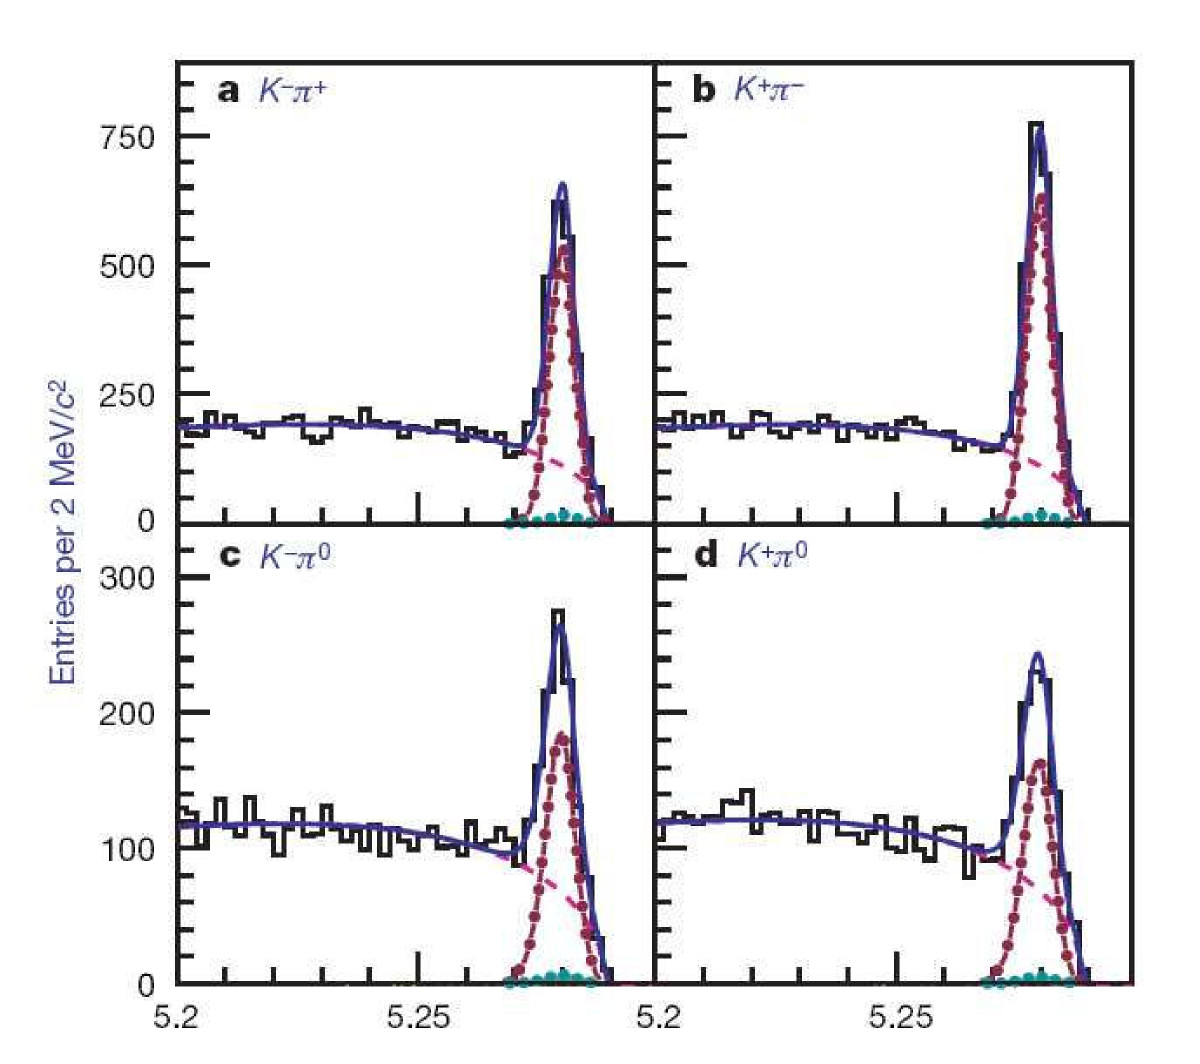 http://static-content.springer.com/image/art%3A10.1186%2F1754-0410-3-3/MediaObjects/13066_2009_Article_17_Fig23_HTML.jpg